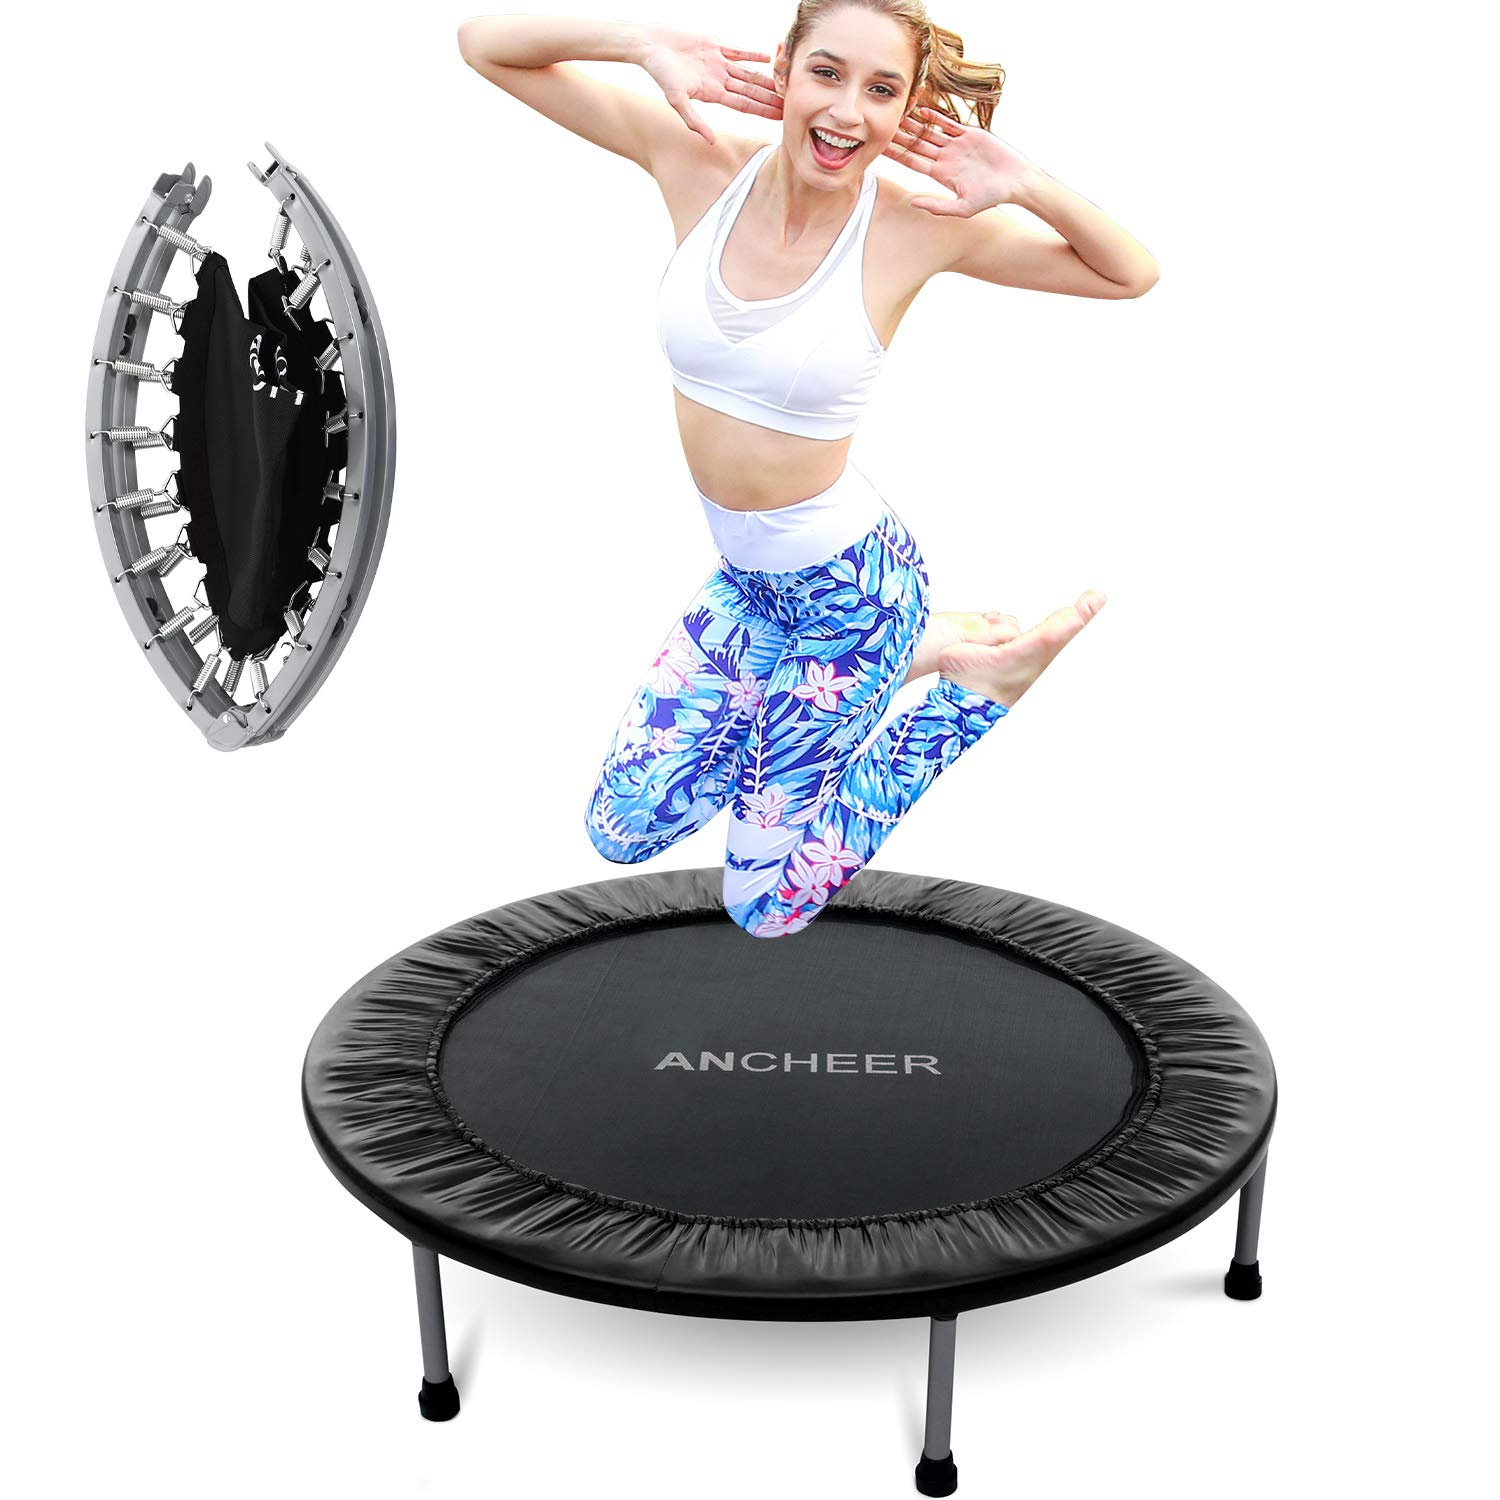 ANCHEER 38-40Inch Foldable Mini Trampoline Rebounder, Quiet and Safe Bounce Spring Mini Bouncer Fitness Trampoline Rebounder for Kids Adults in Home/Garden/Office Cardio Trainer